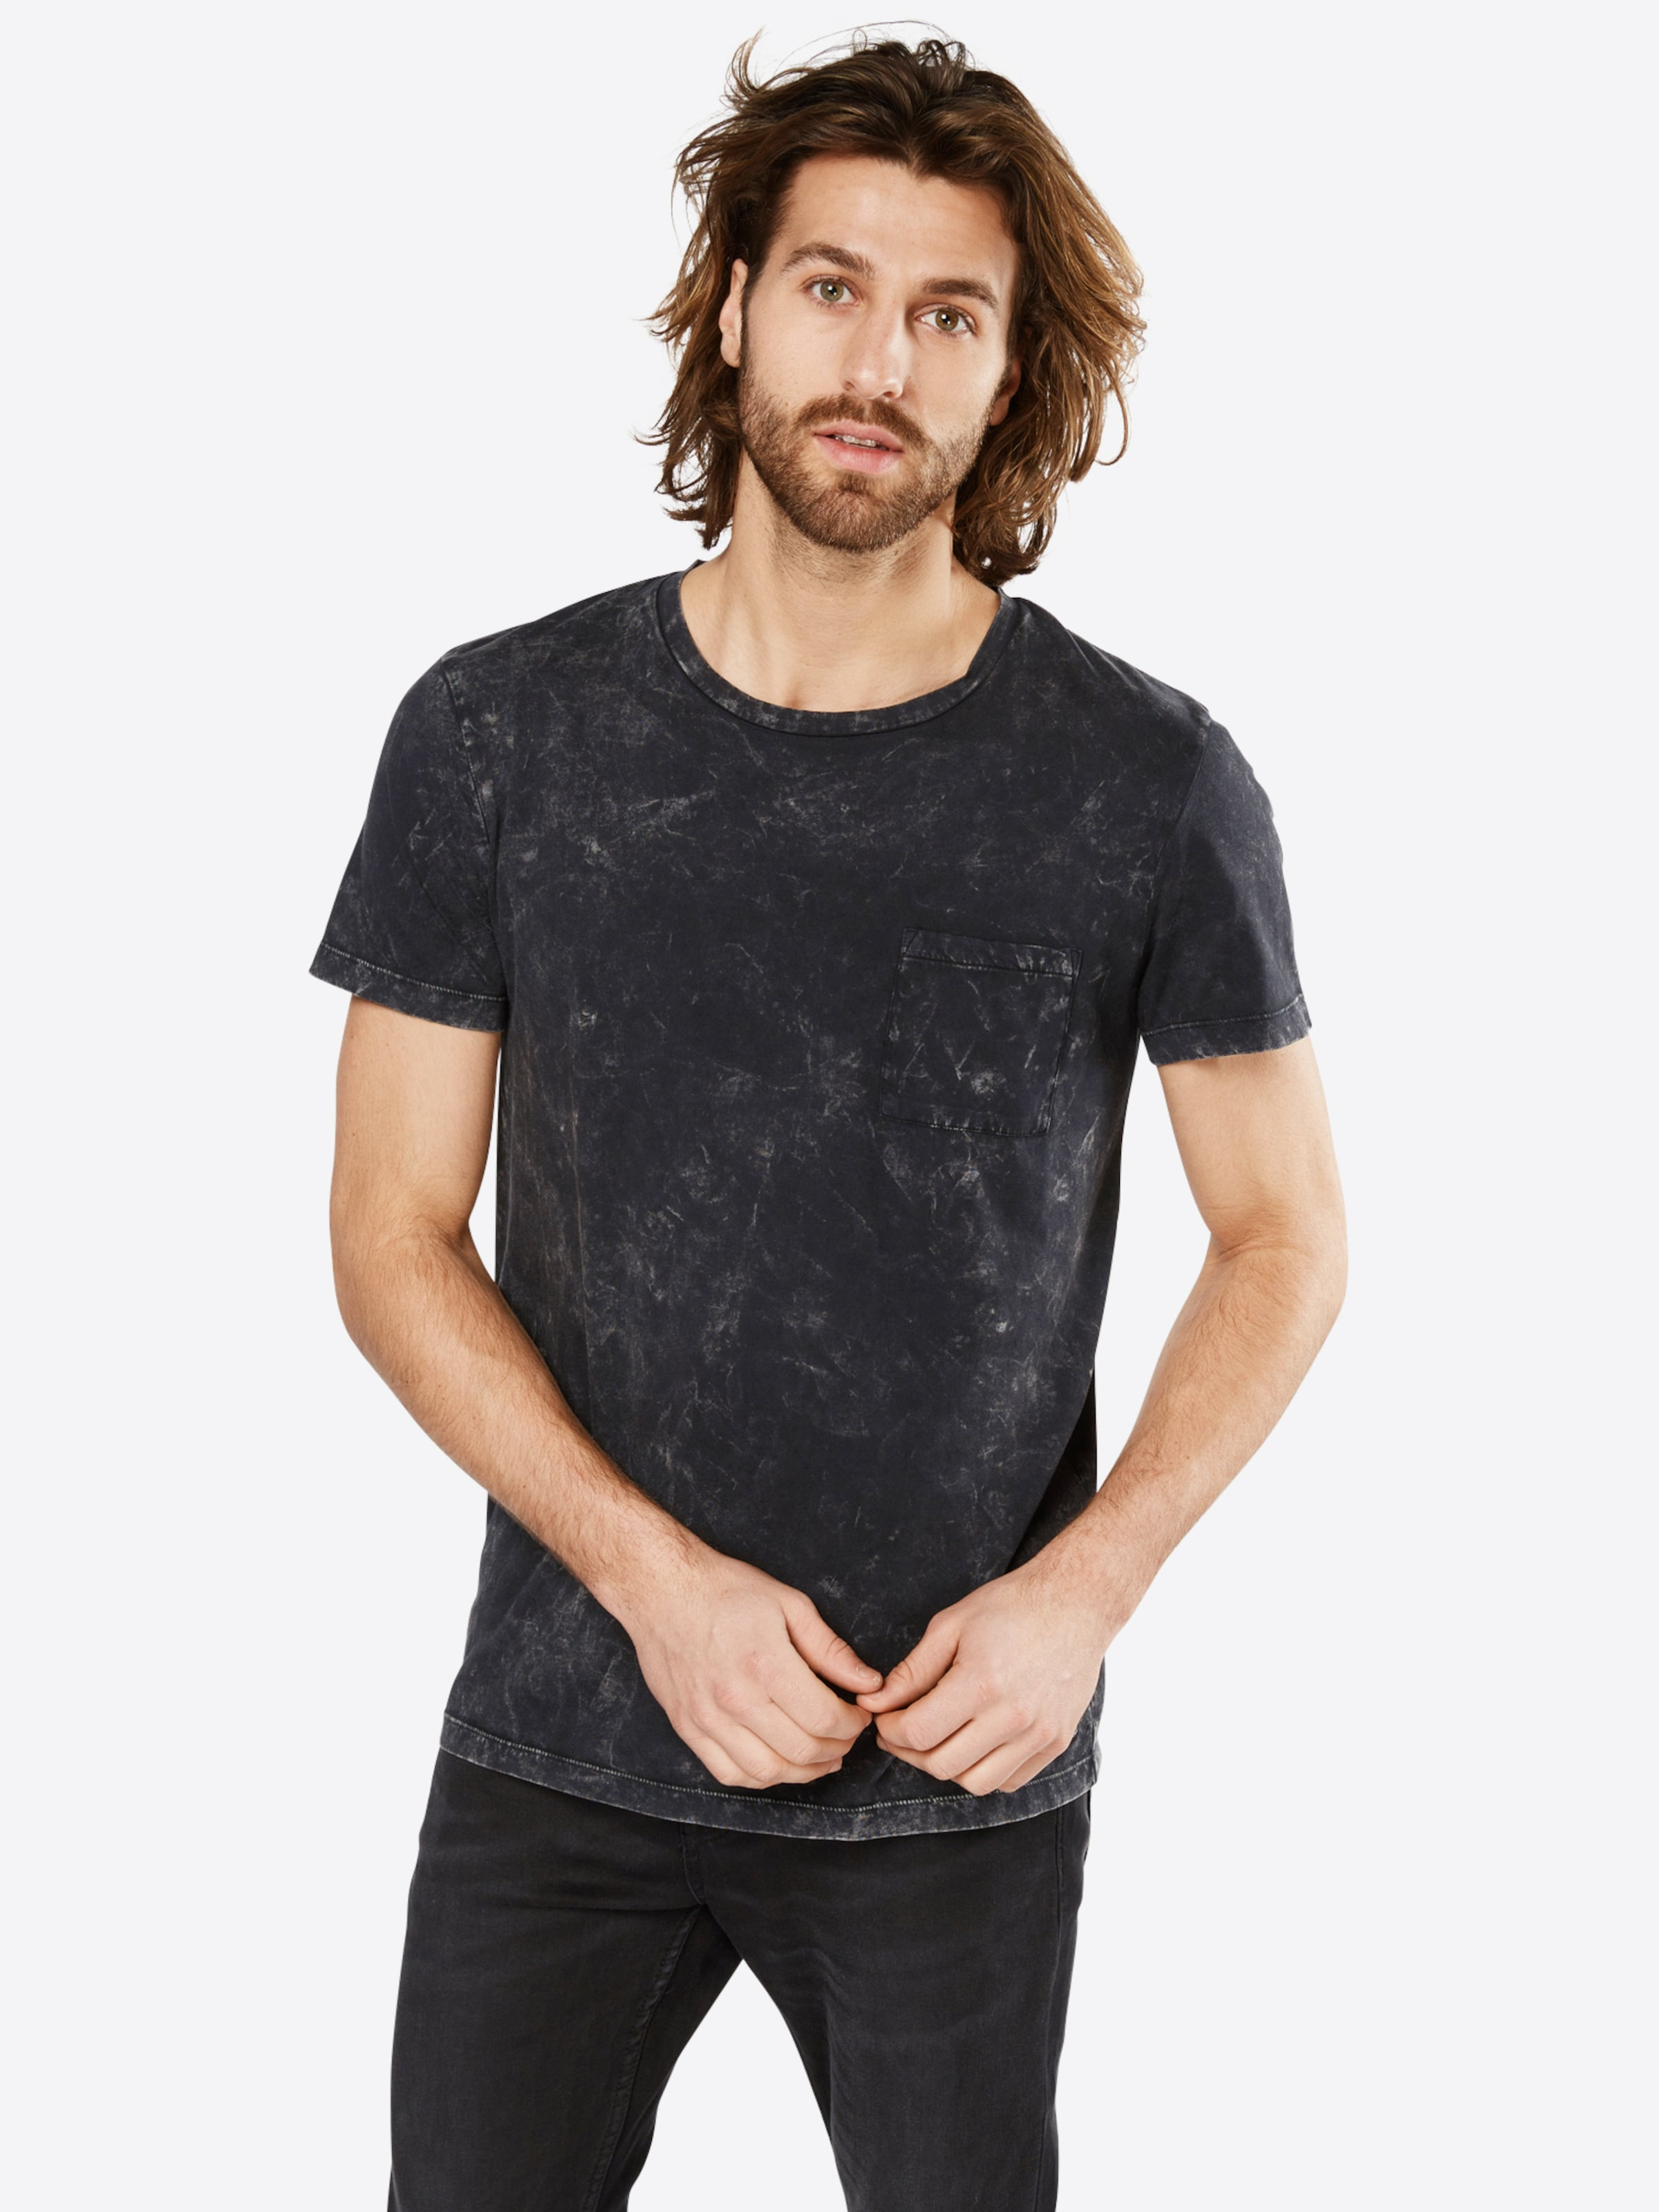 TOM TAILOR DENIM T-Shirt 'Washed tee with pocket' Günstig Kaufen Extrem hQb89Pc7HH